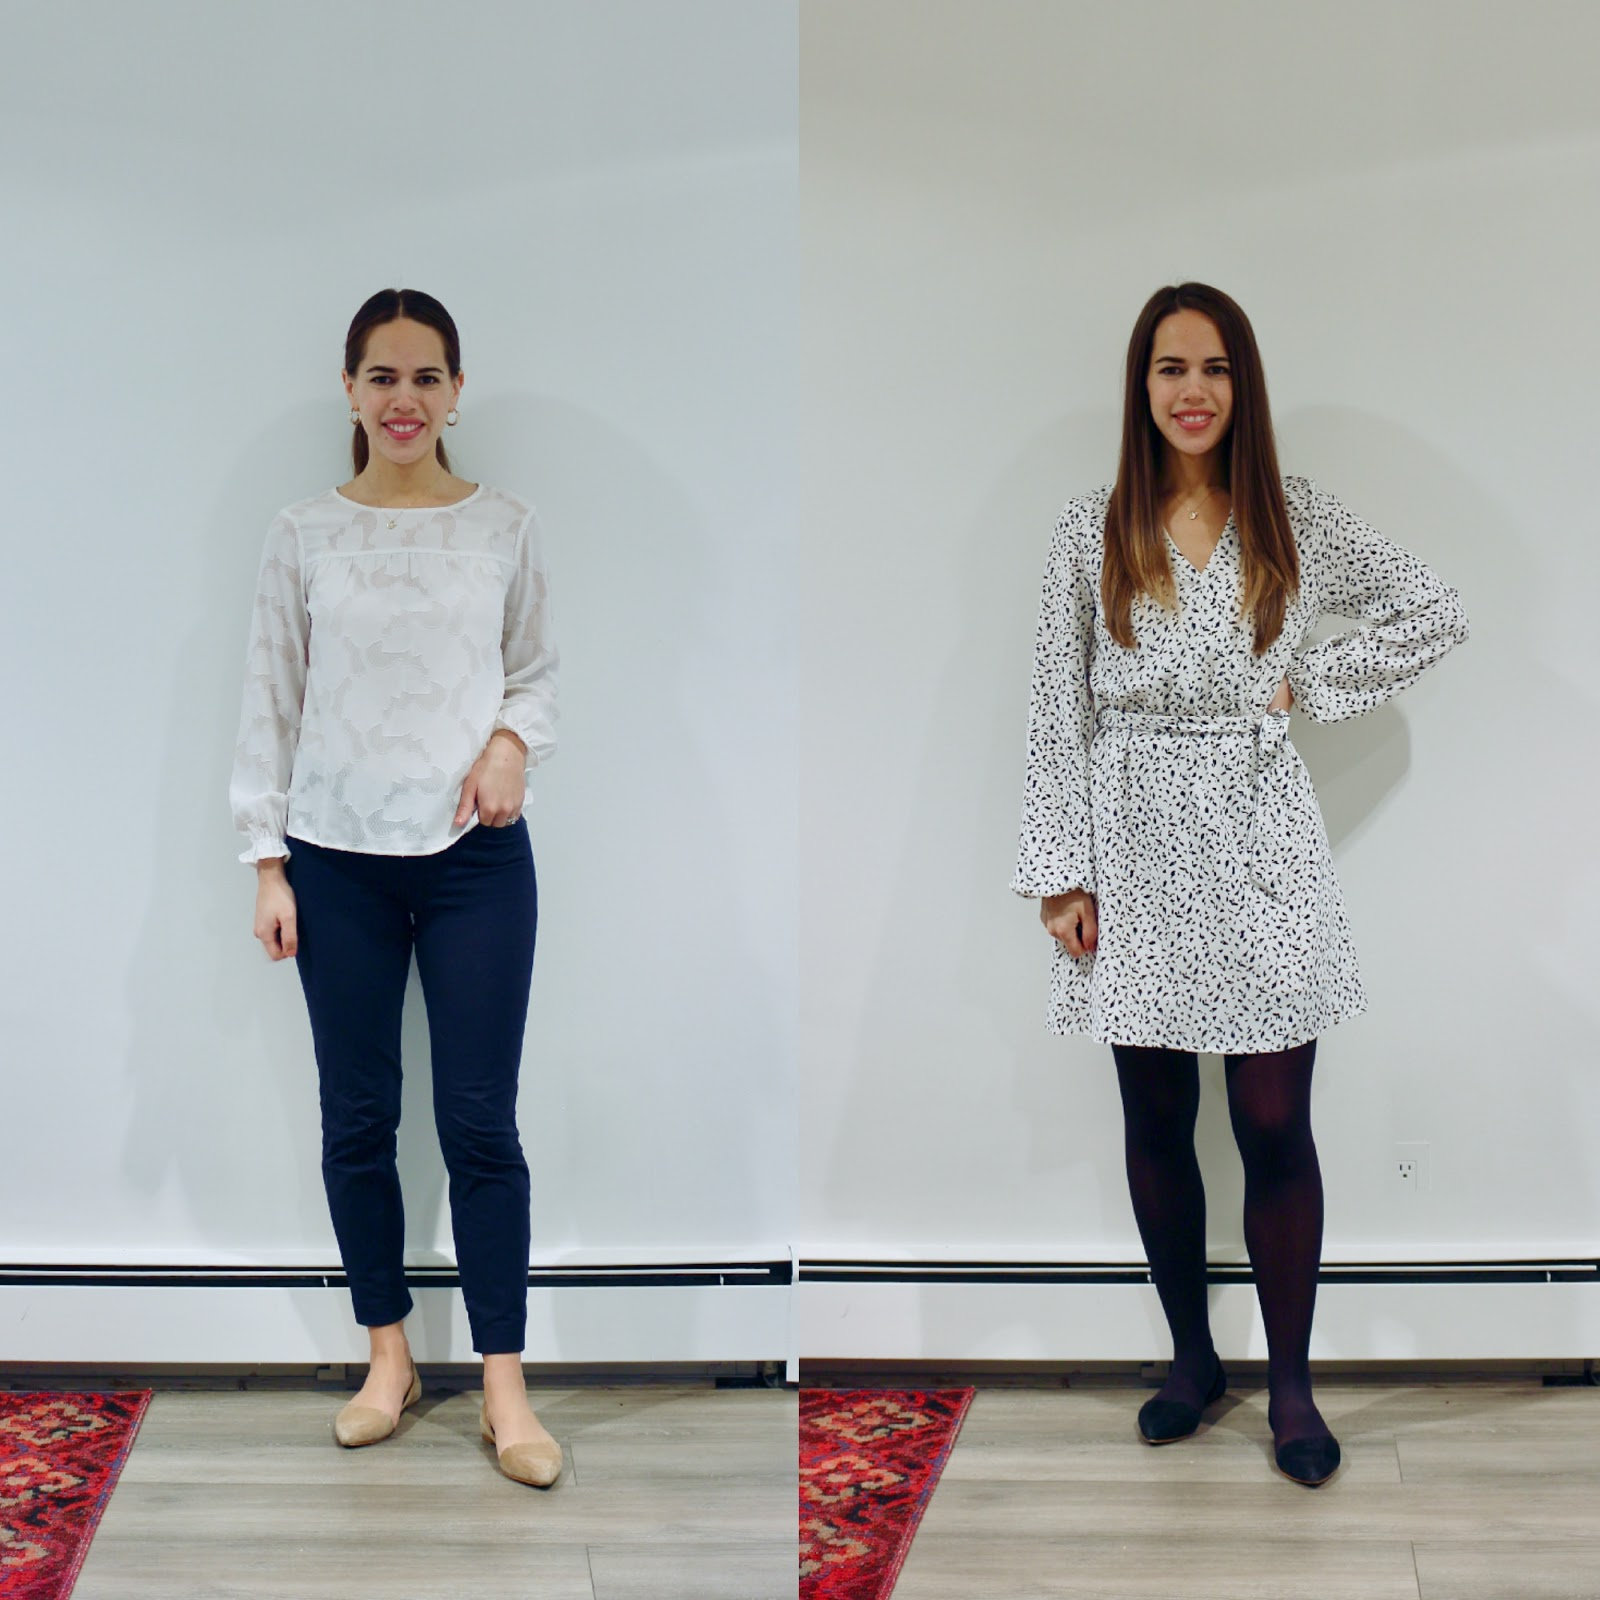 Jules in Flats - October Outfits Week 4